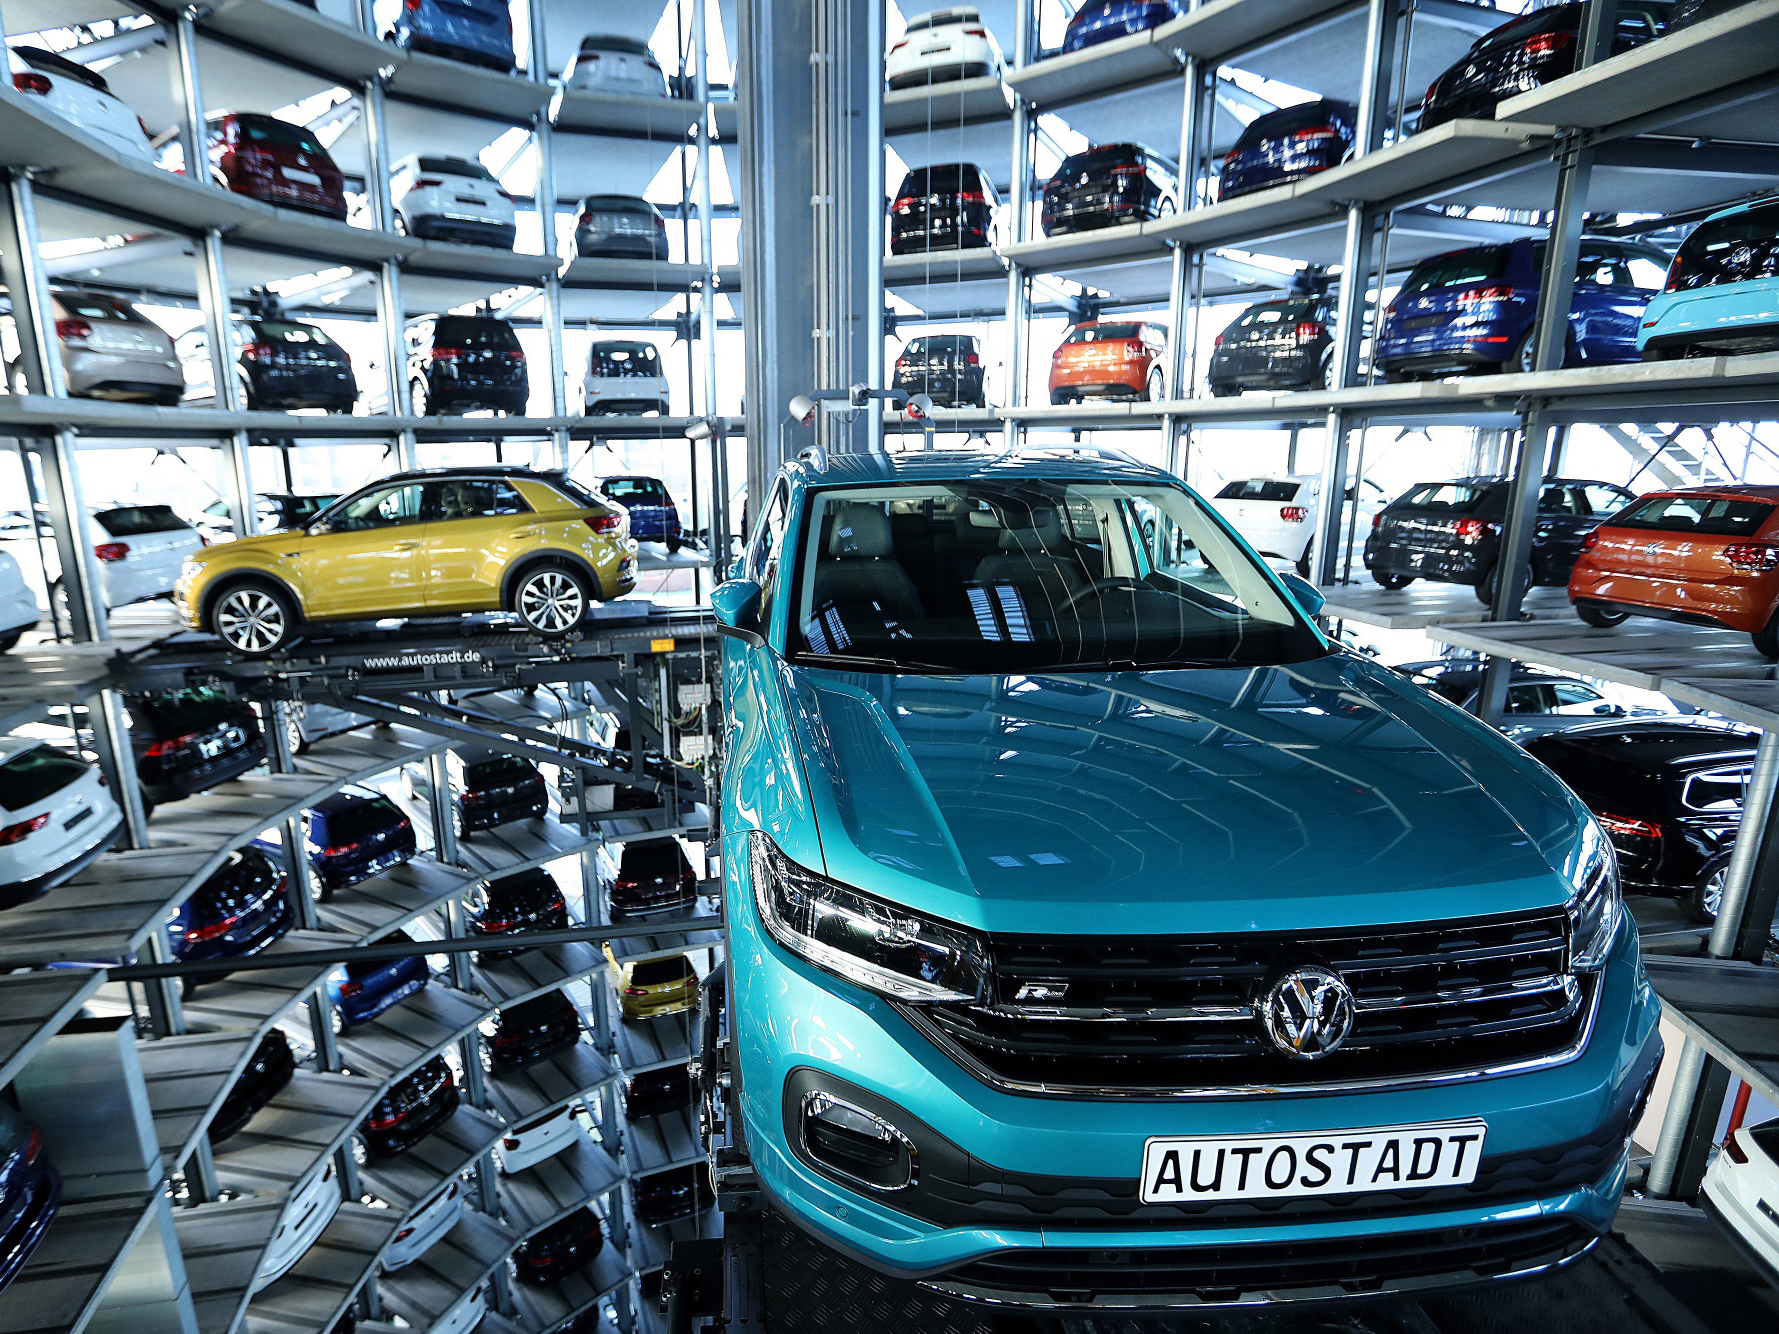 Trade War Casts Shadow Over Climate Message: Frankfurt Auto Show